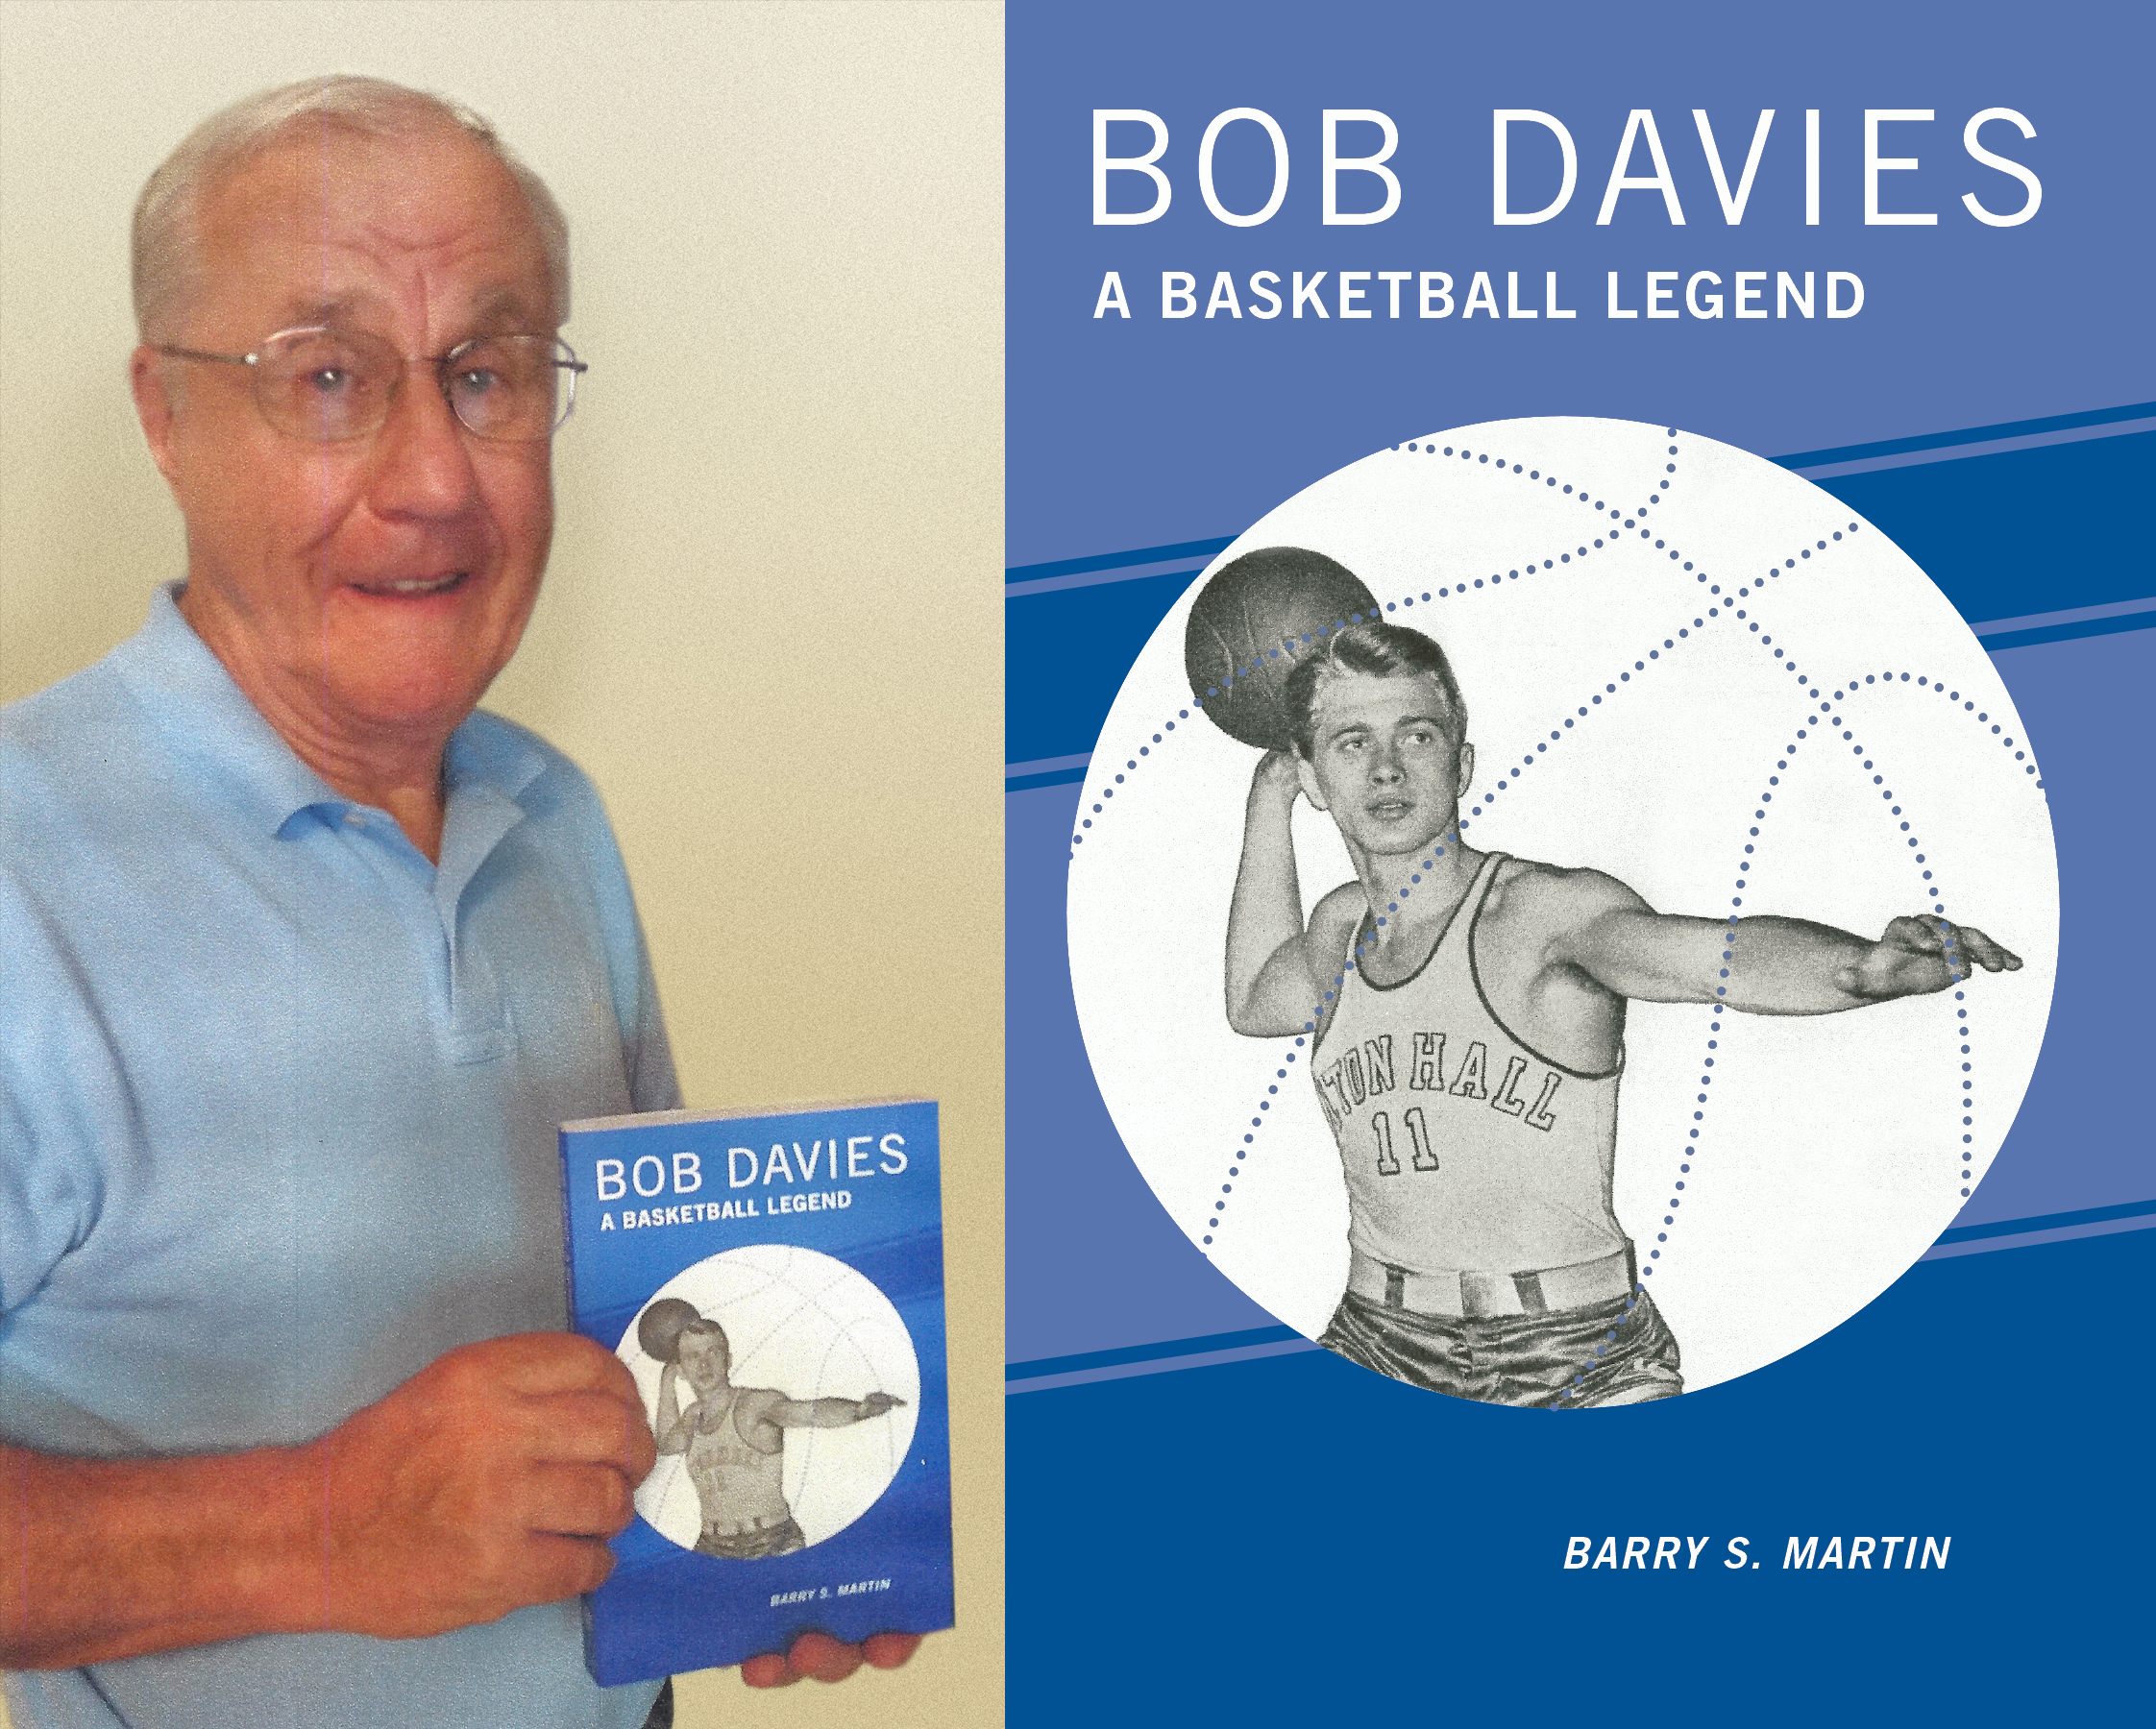 Author Barry Martin with his book on Bob Davies